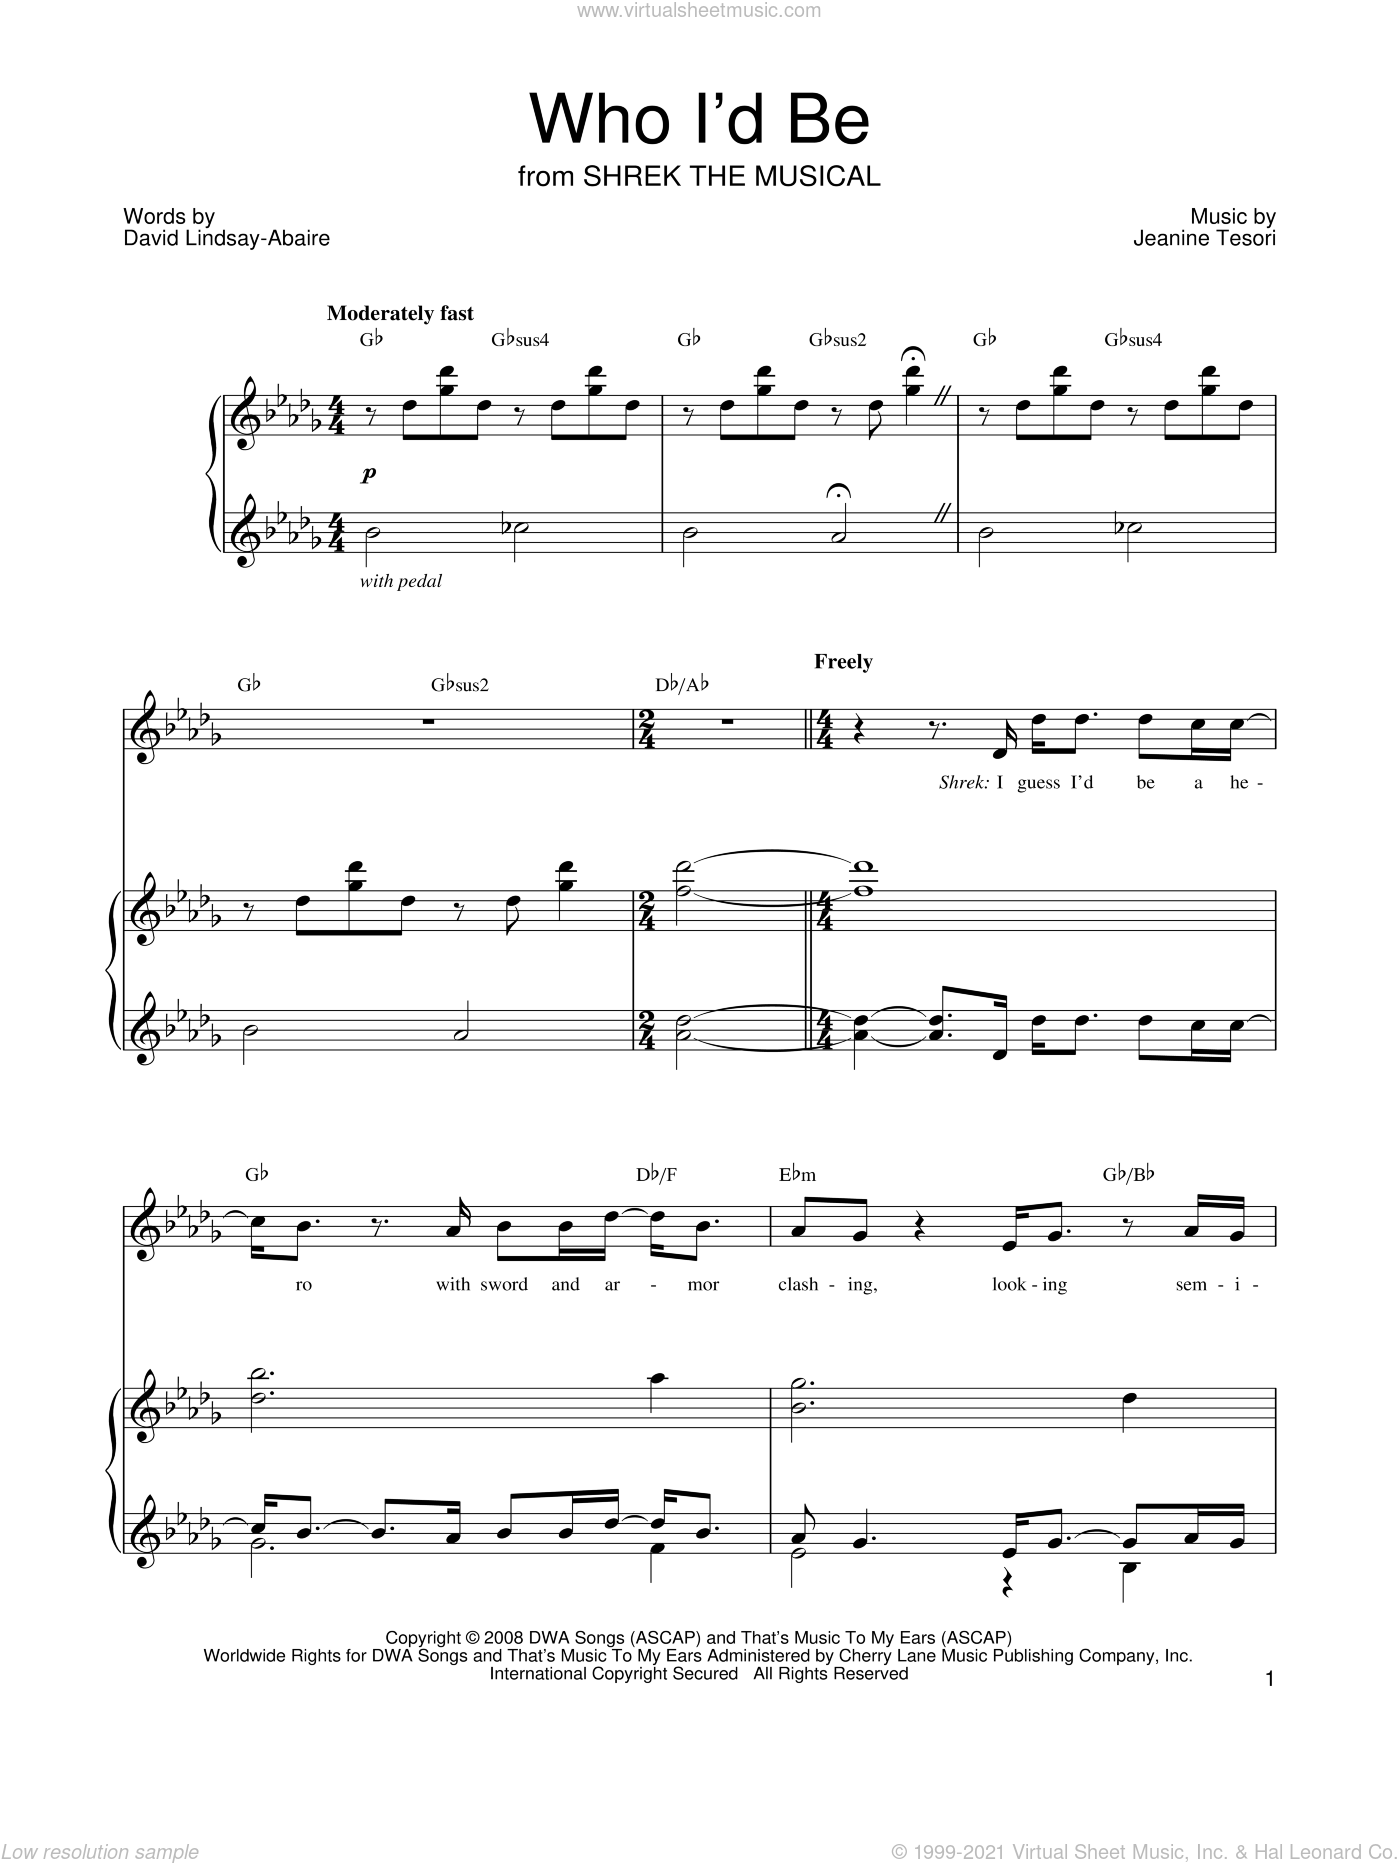 Who I'd Be sheet music for voice, piano or guitar by Jeanine Tesori and David Lindsay-Abaire